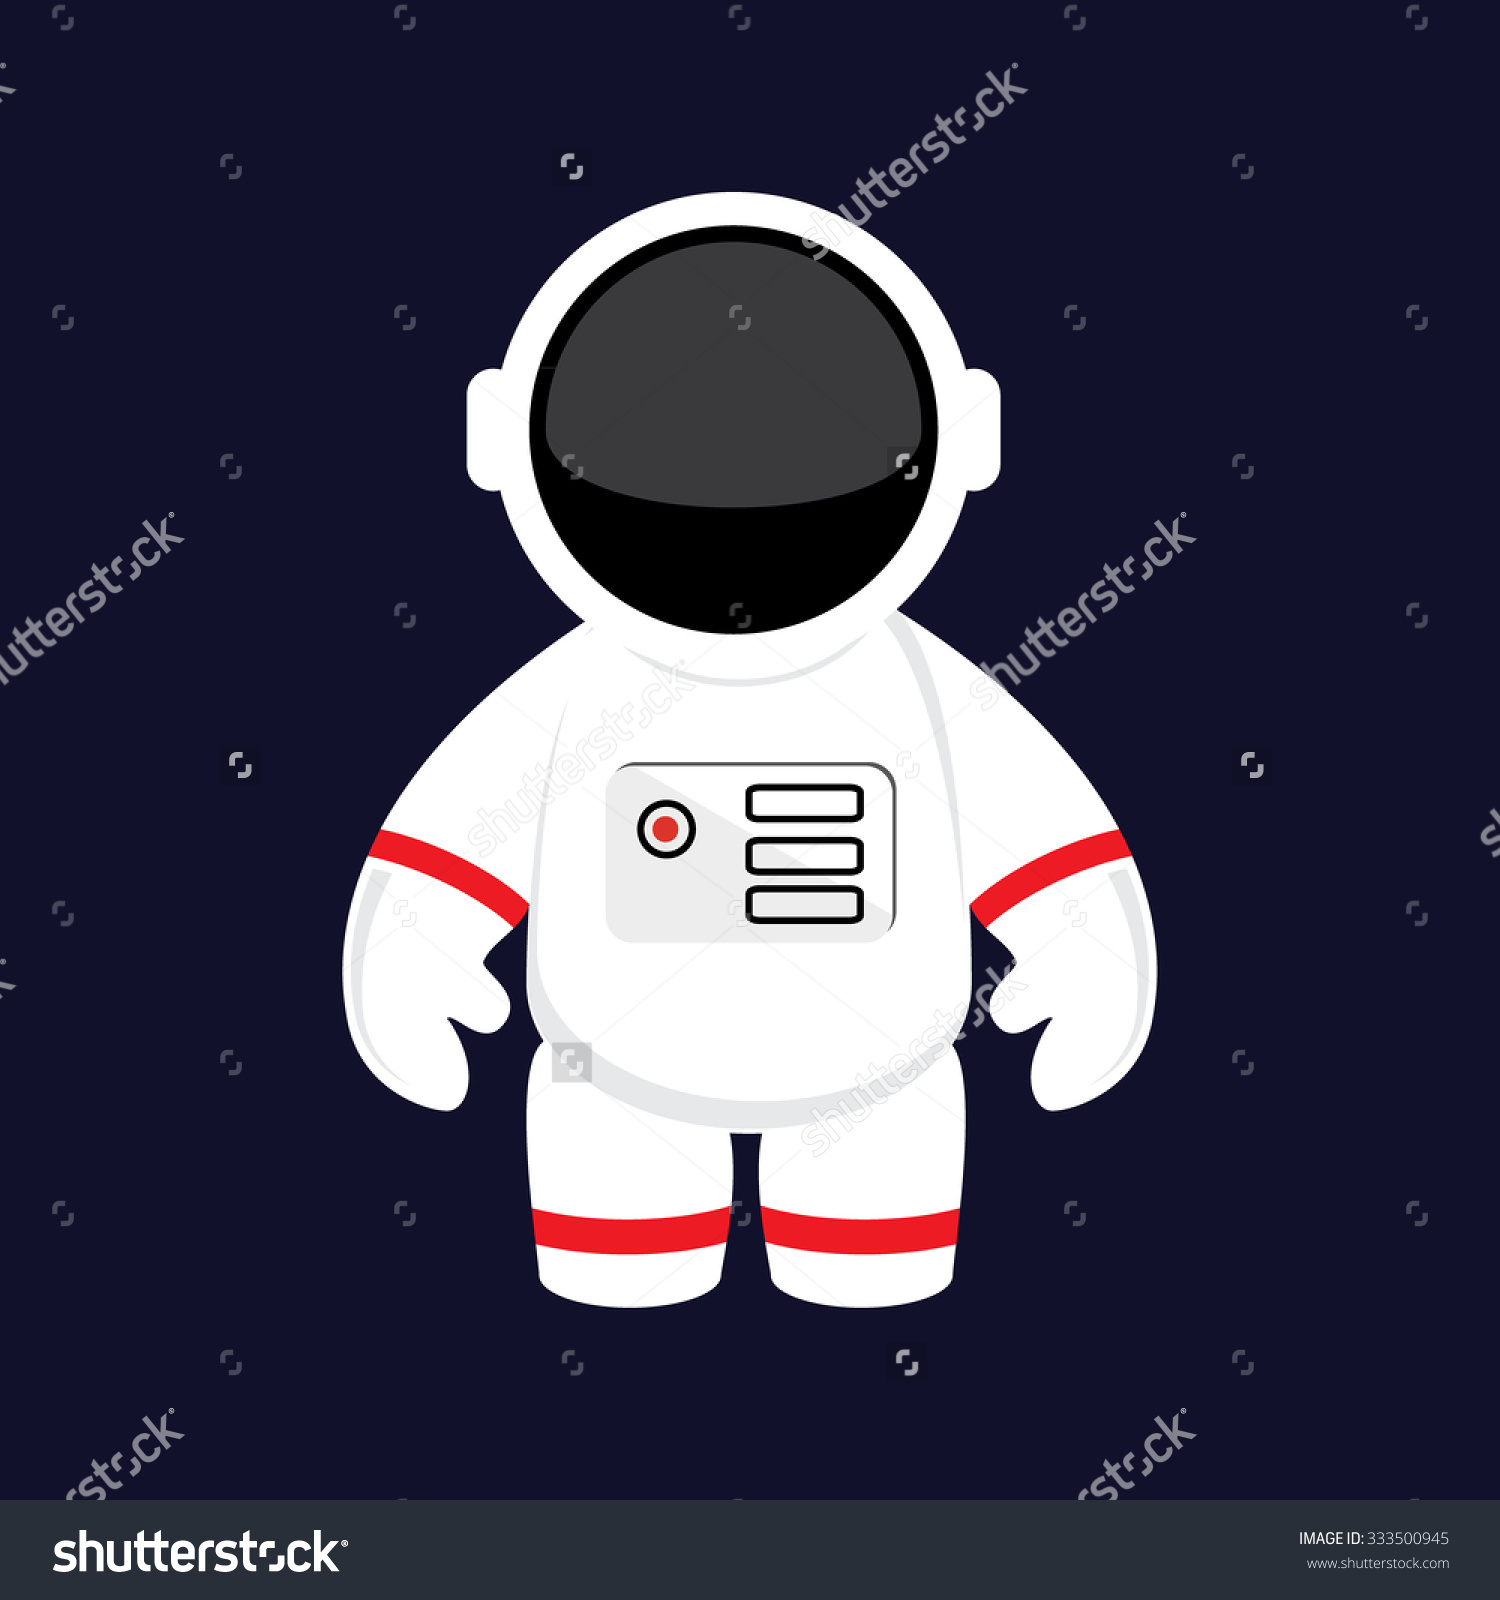 astronauts in space clipart - photo #38